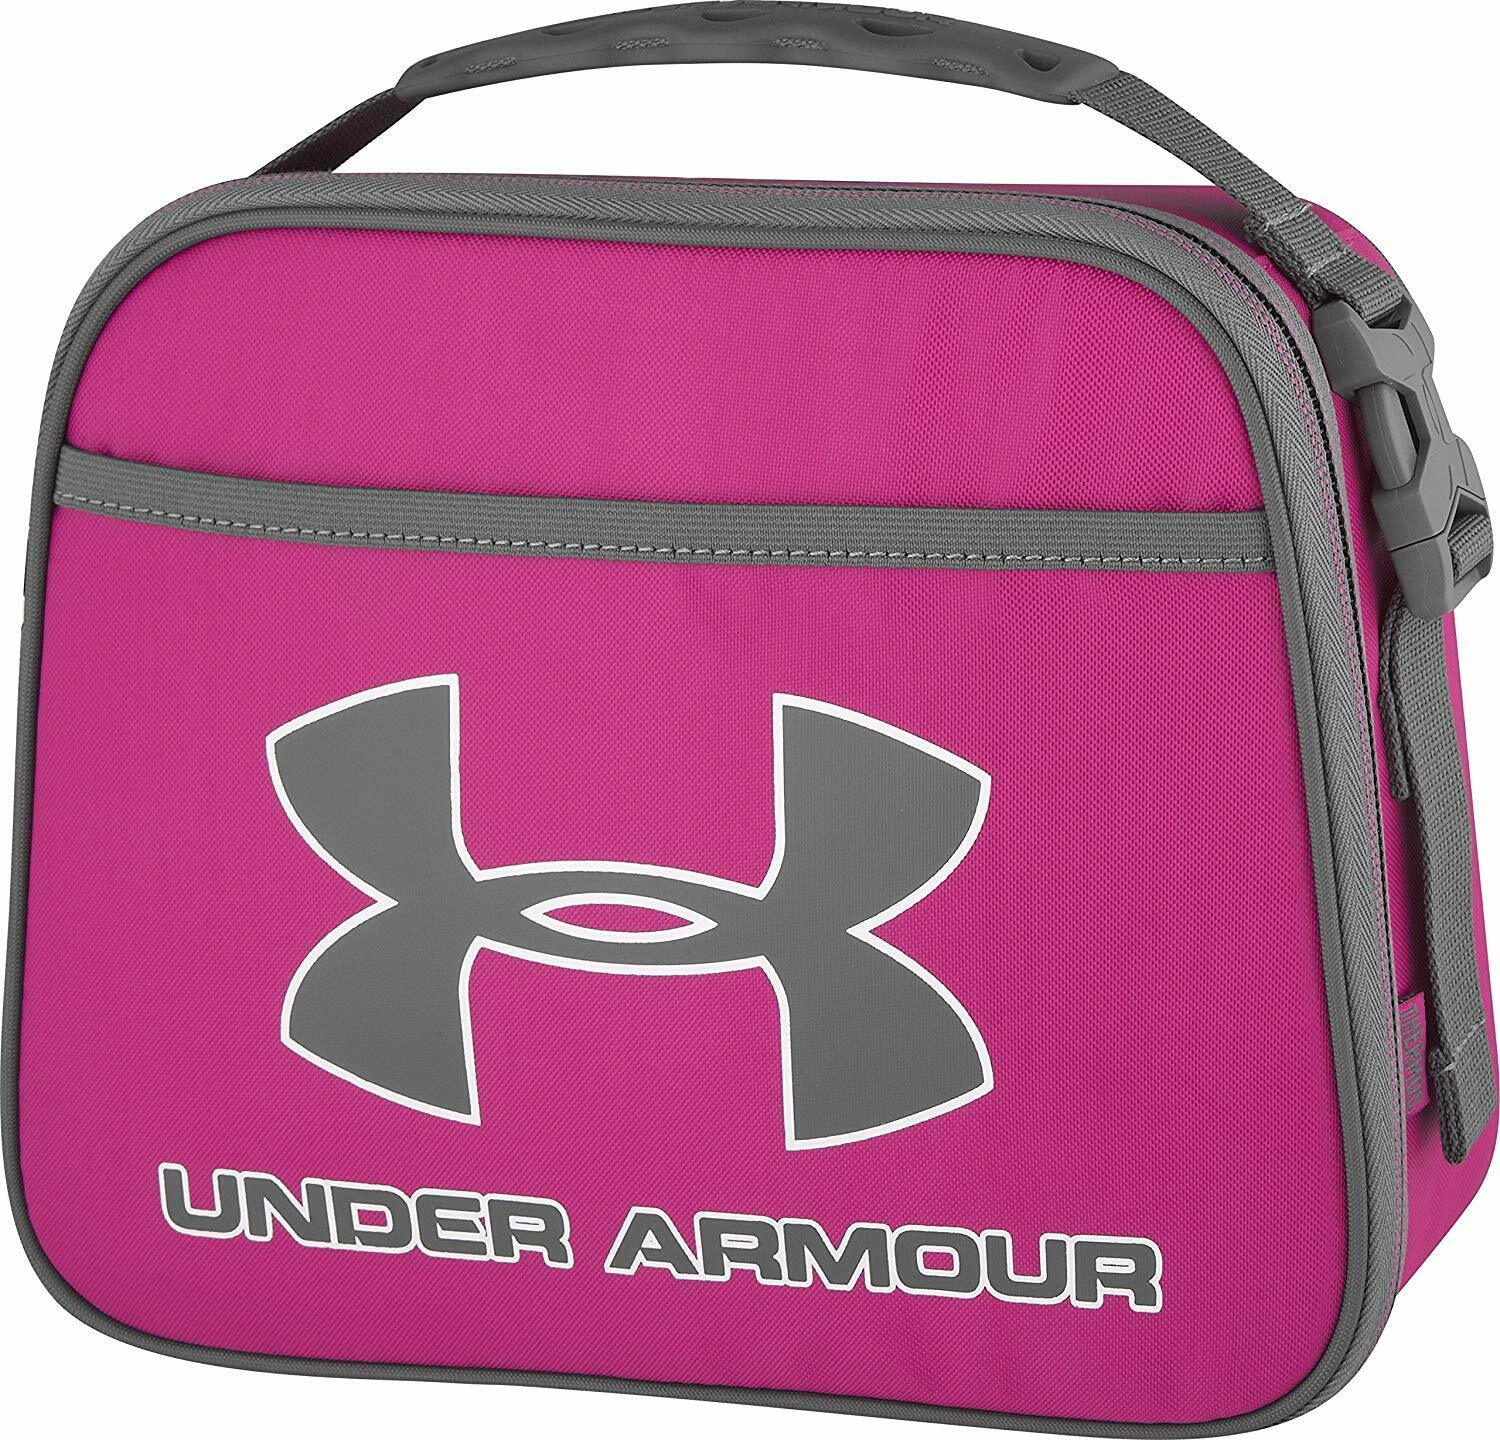 under armour insulated crush resistant lunch kit